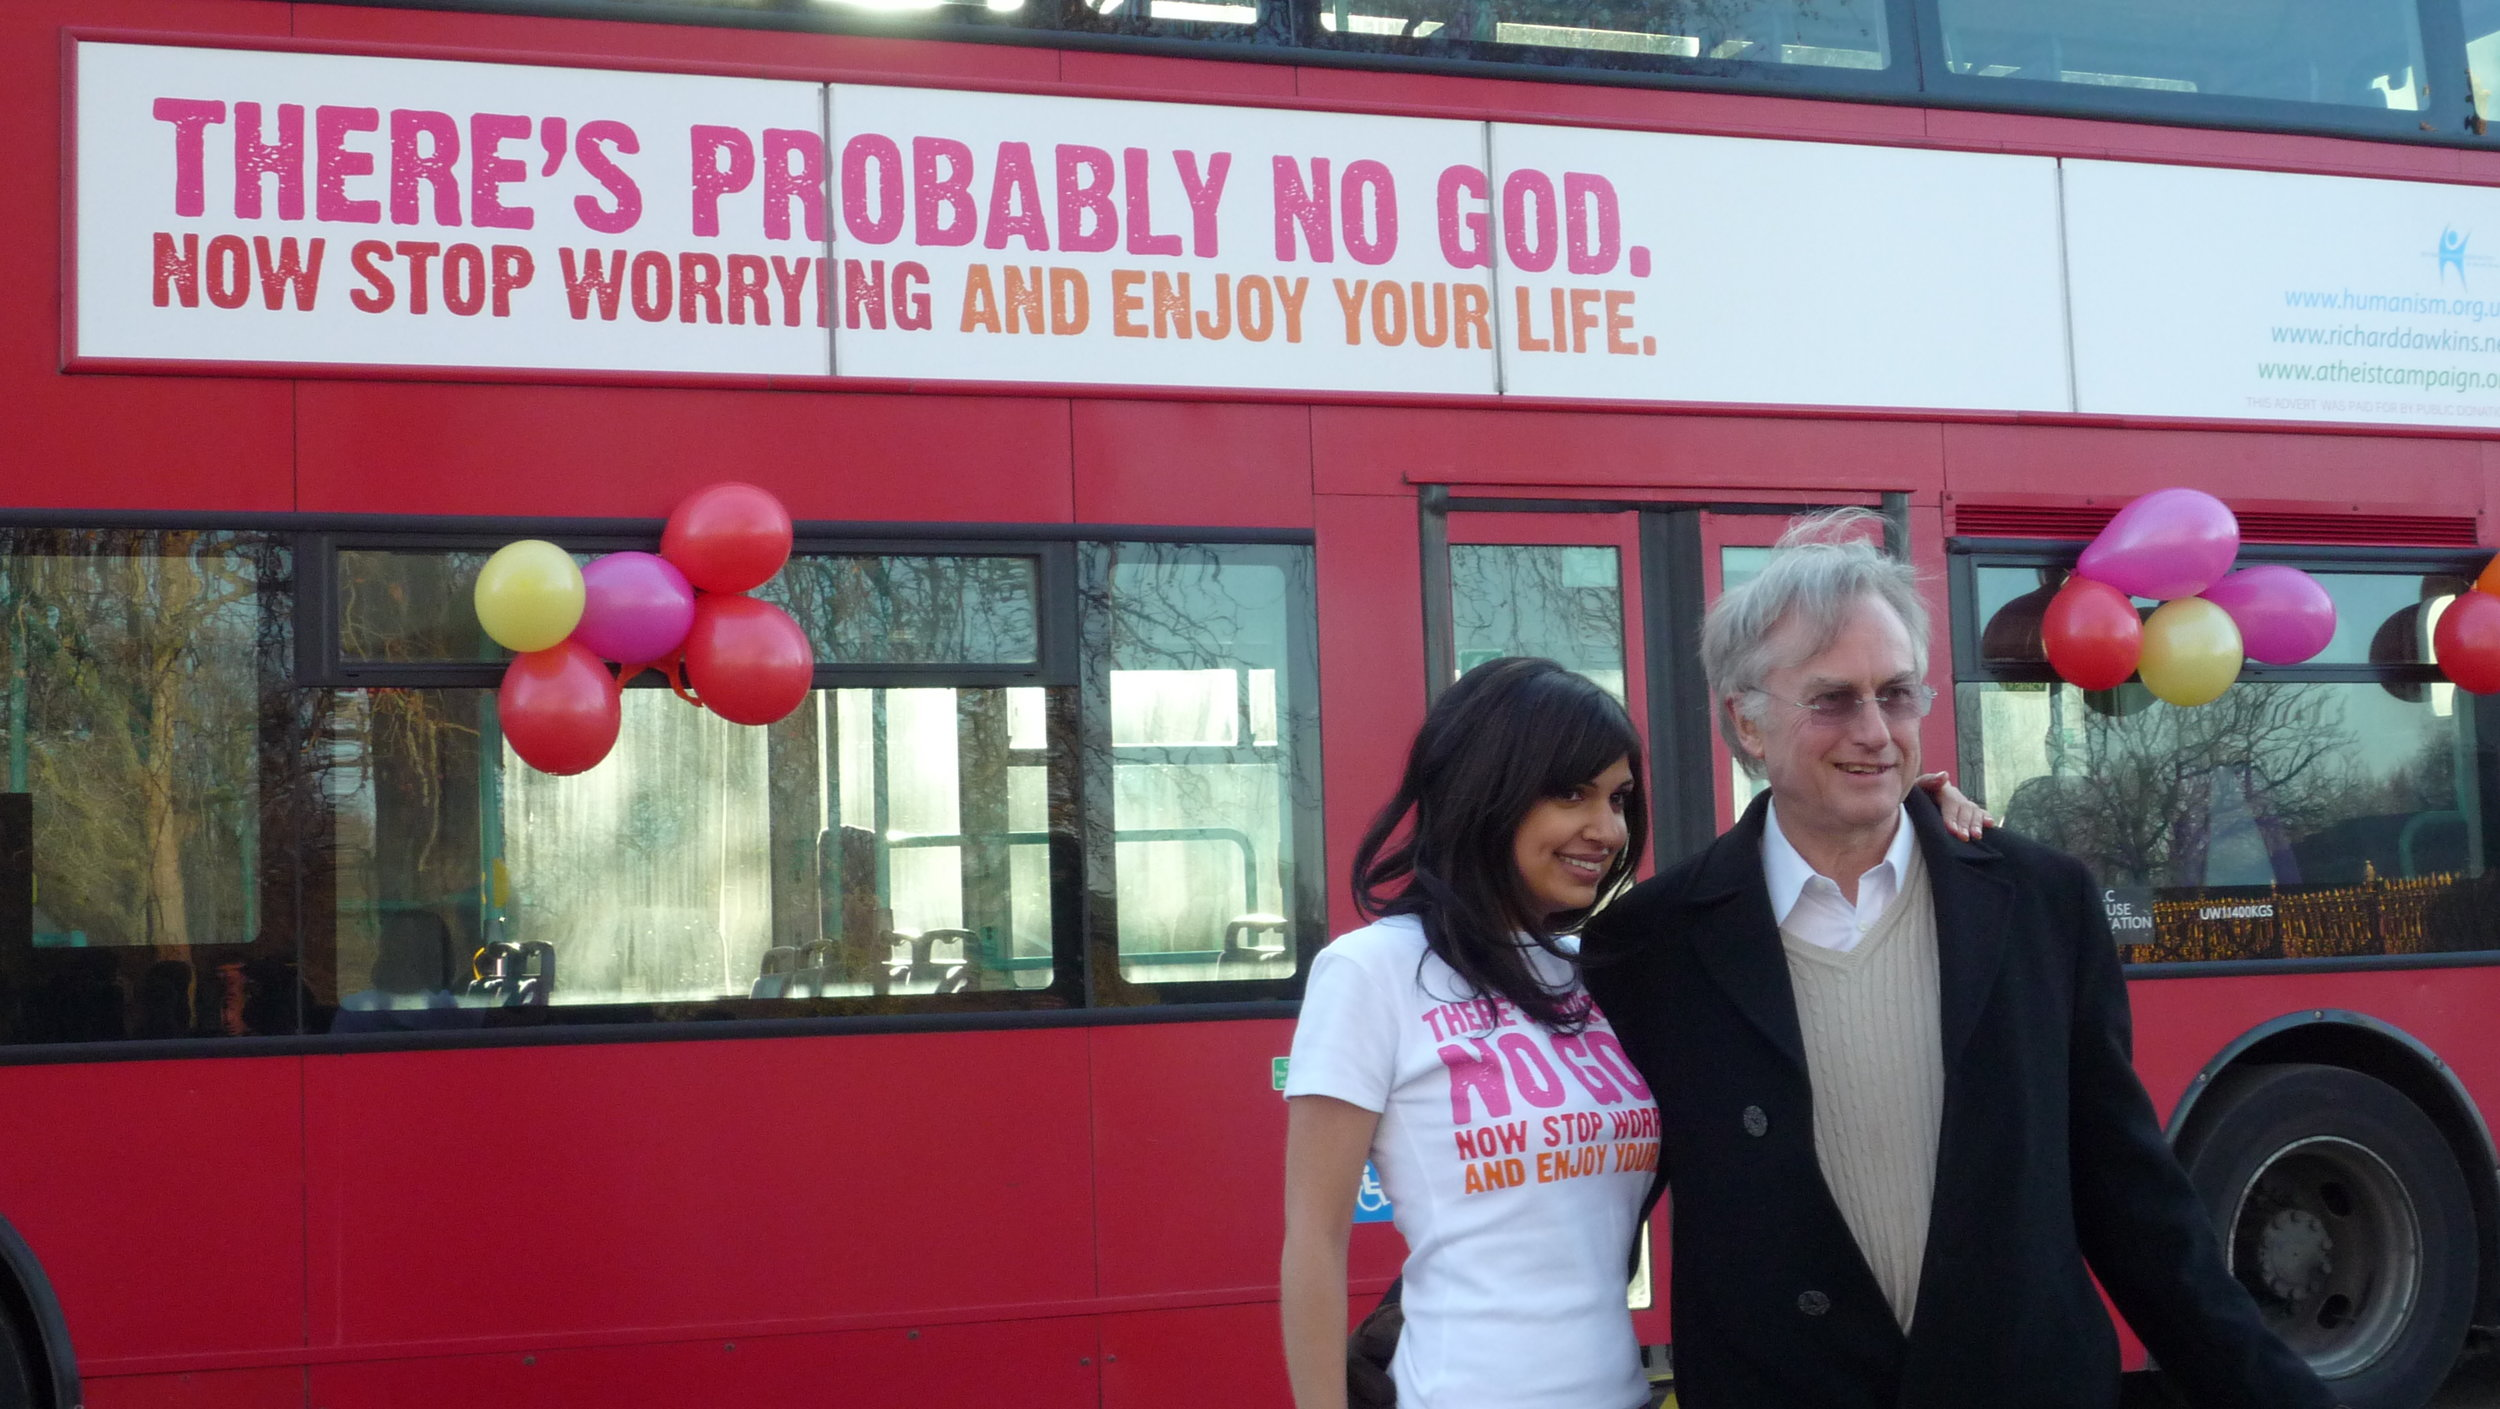 Professor Richard Dawkins and Ariane Sherine launching a bus ad campaign for atheism.